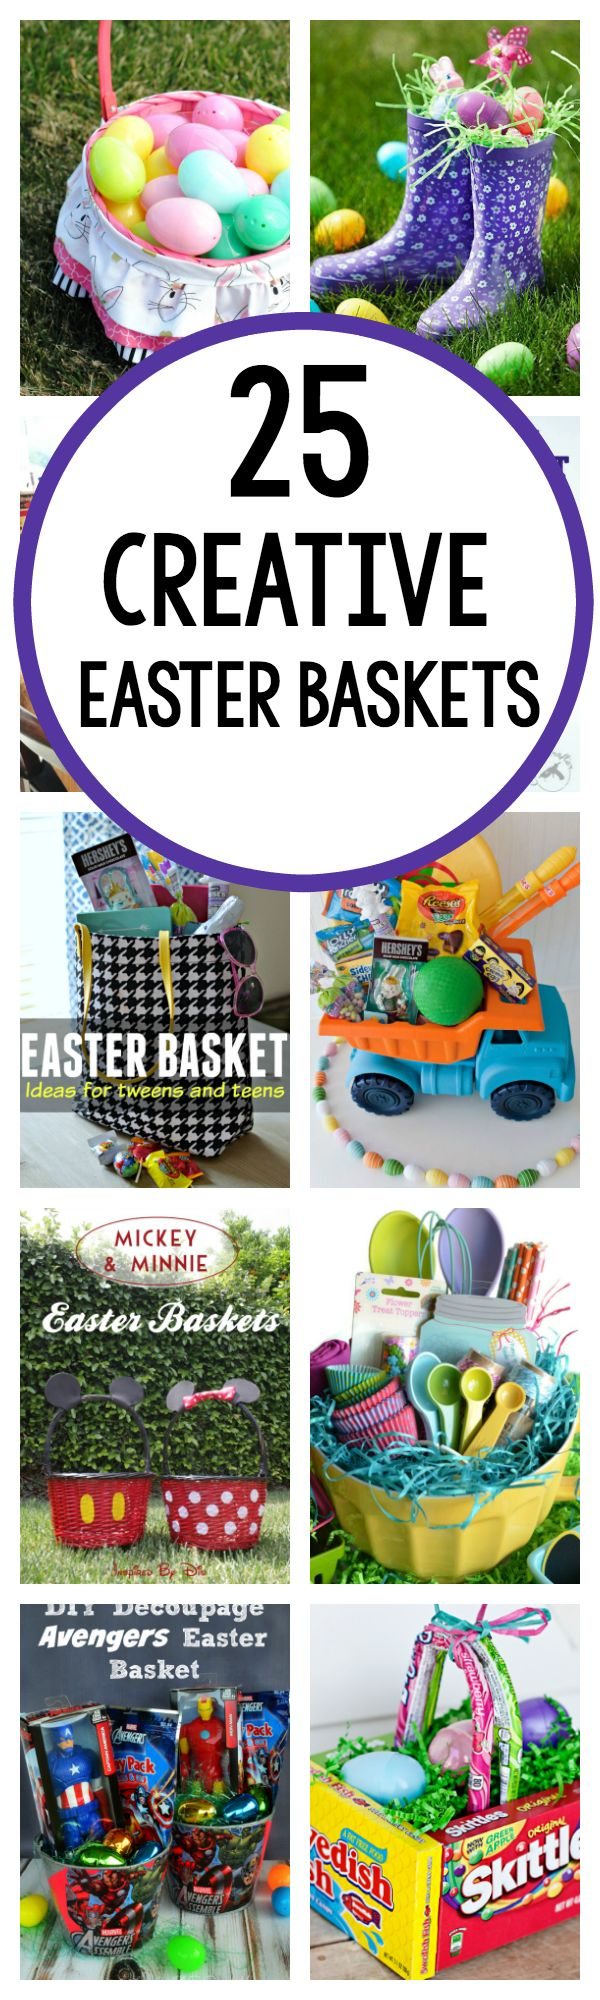 25 Creative Easter Basket Ideas